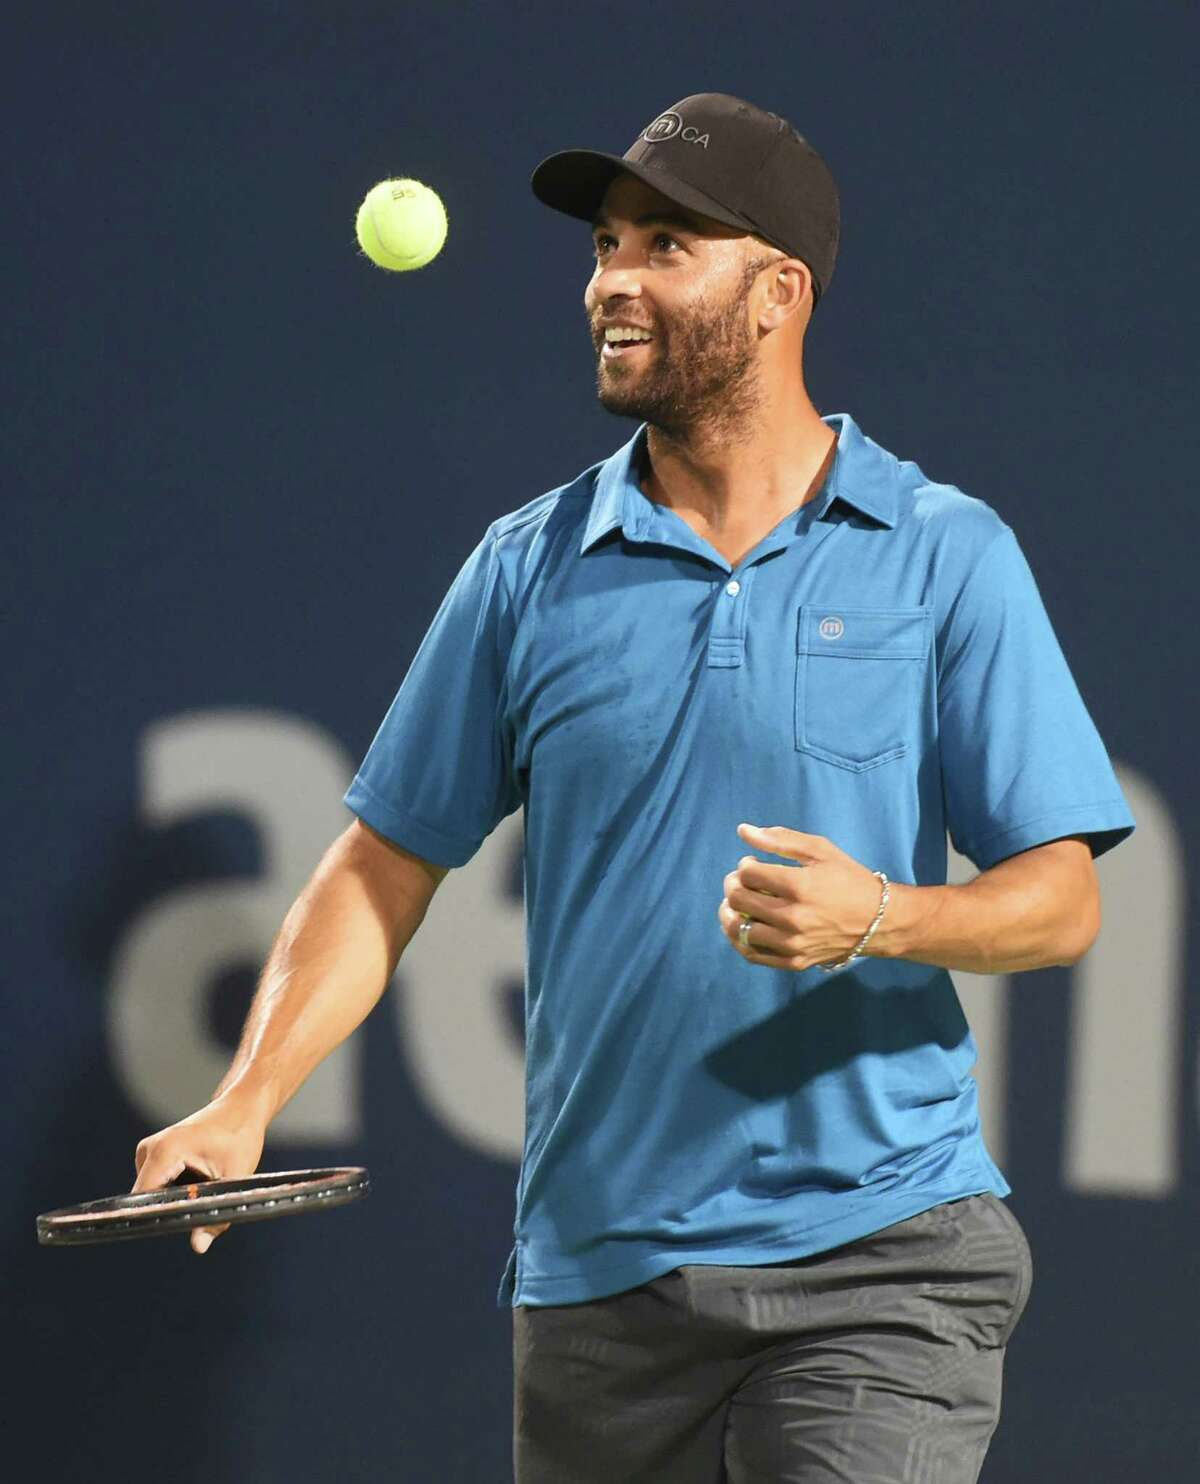 (Melanie Stengel - Register) Connecticut OpenTennis 8/21. James Blake smiles after winning a point against Andy Roddick in the 1st set.